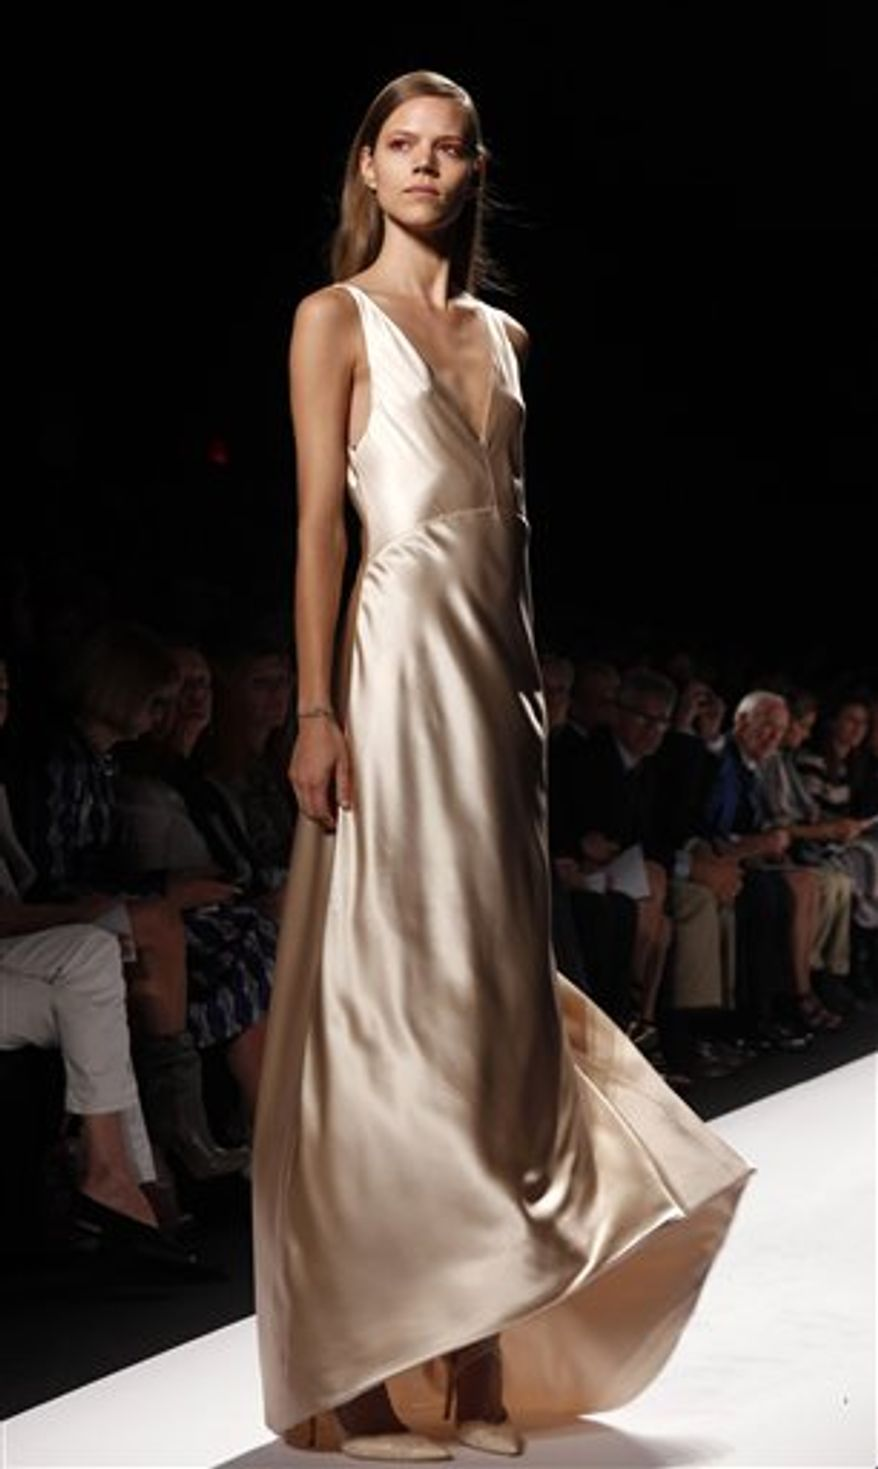 The Narciso Rodriguez spring 2011 collection is modeled during Fashion Week in New York, Tuesday, Sept. 14, 2010.  (AP Photo/Seth Wenig)